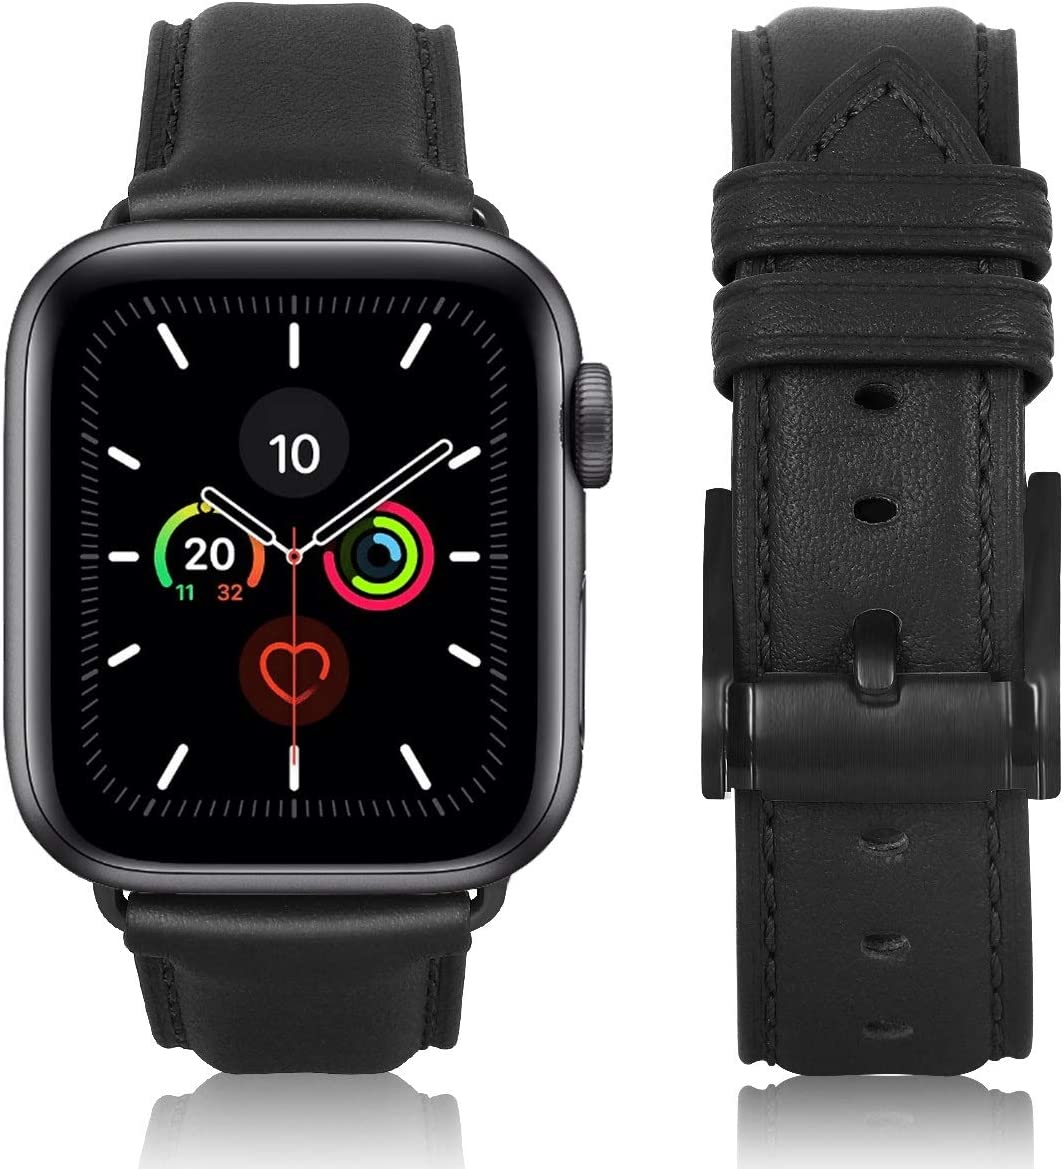 JIKE watch Bands Compatible with Apple Watch Band 38mm 40mm 42mm 44mm, Top Grain Leather Smart Watch Strap Compatible for Men Women iWatch Series 6/ 5 /4 /3 /2 /1,SE(Black/Black Buckle 42mm44mm)